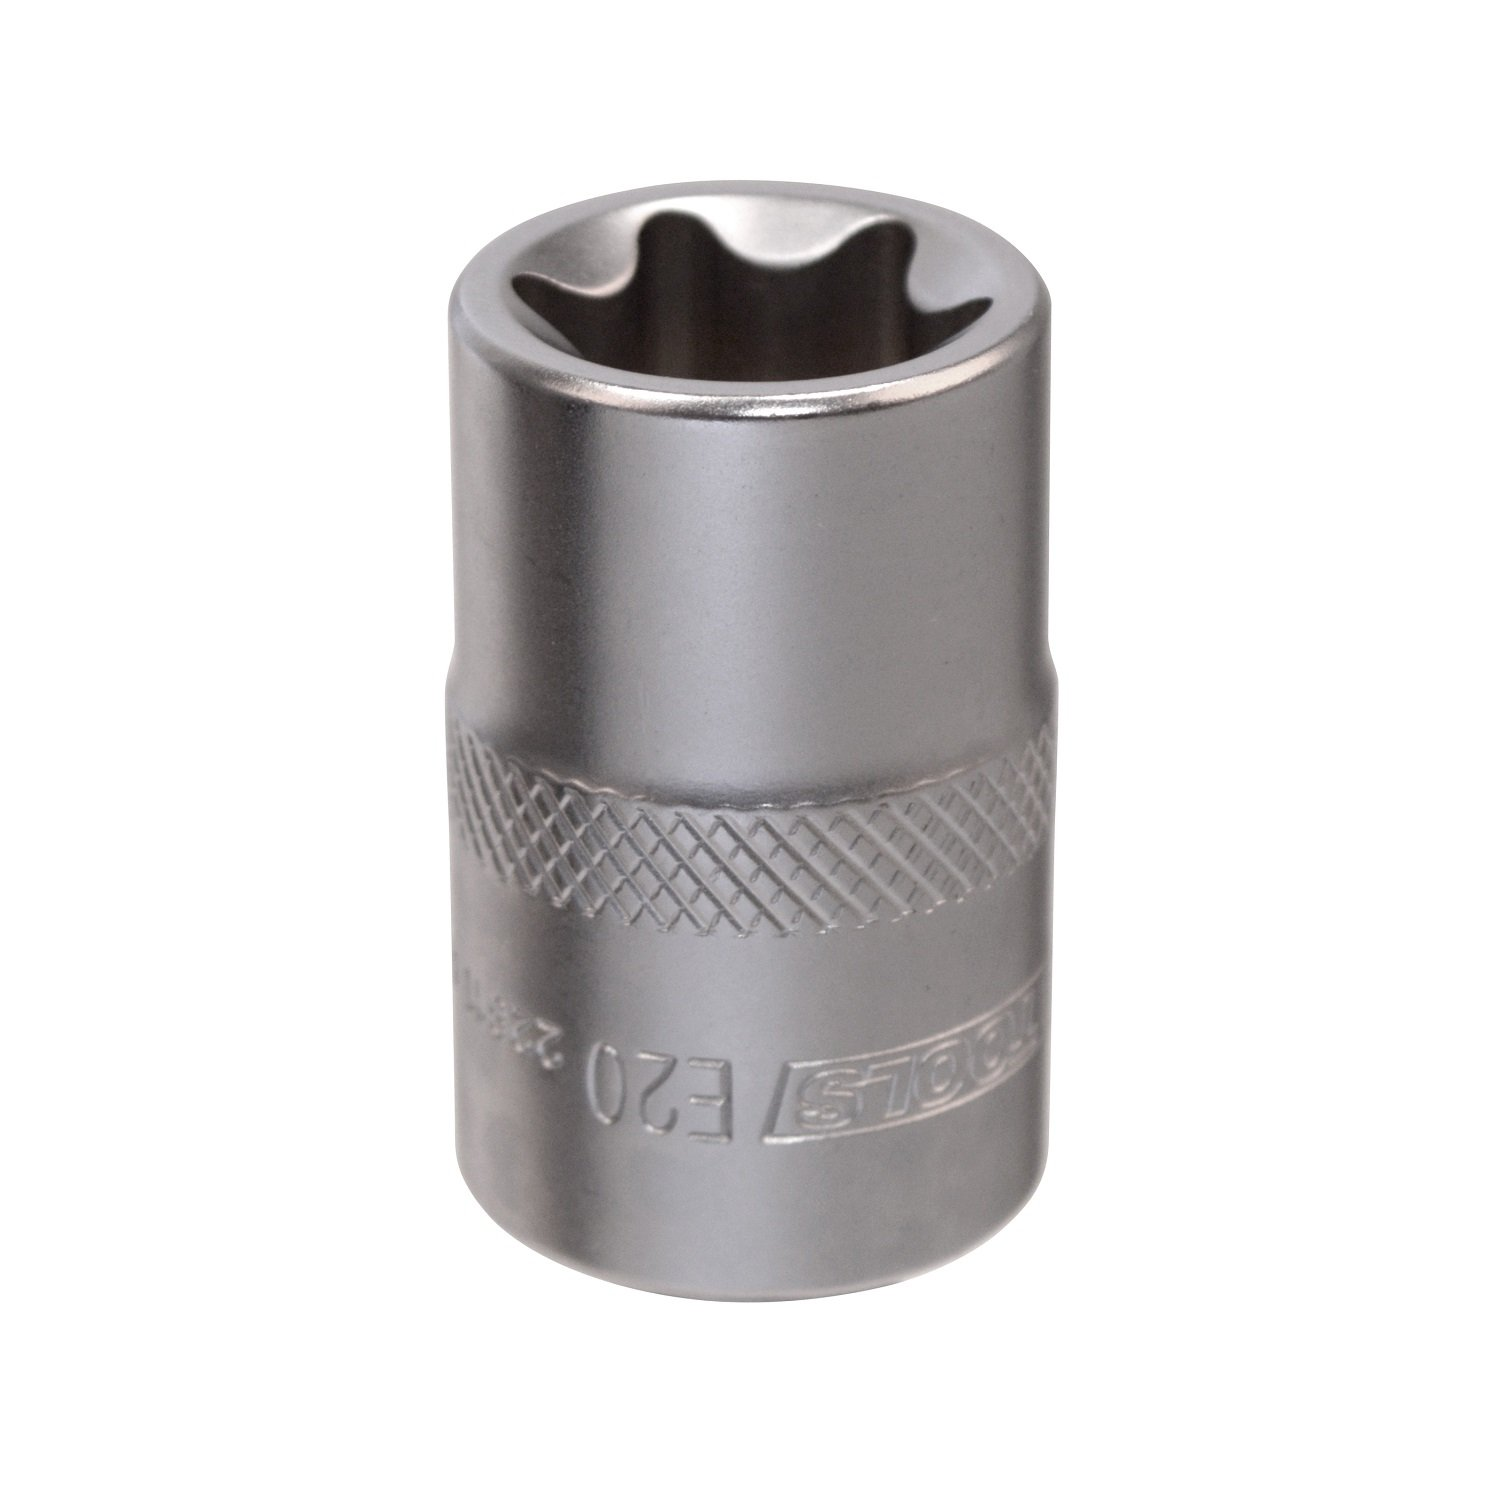 OEMTOOLS 22811 E20 1//2 Inch Drive External Star Socket